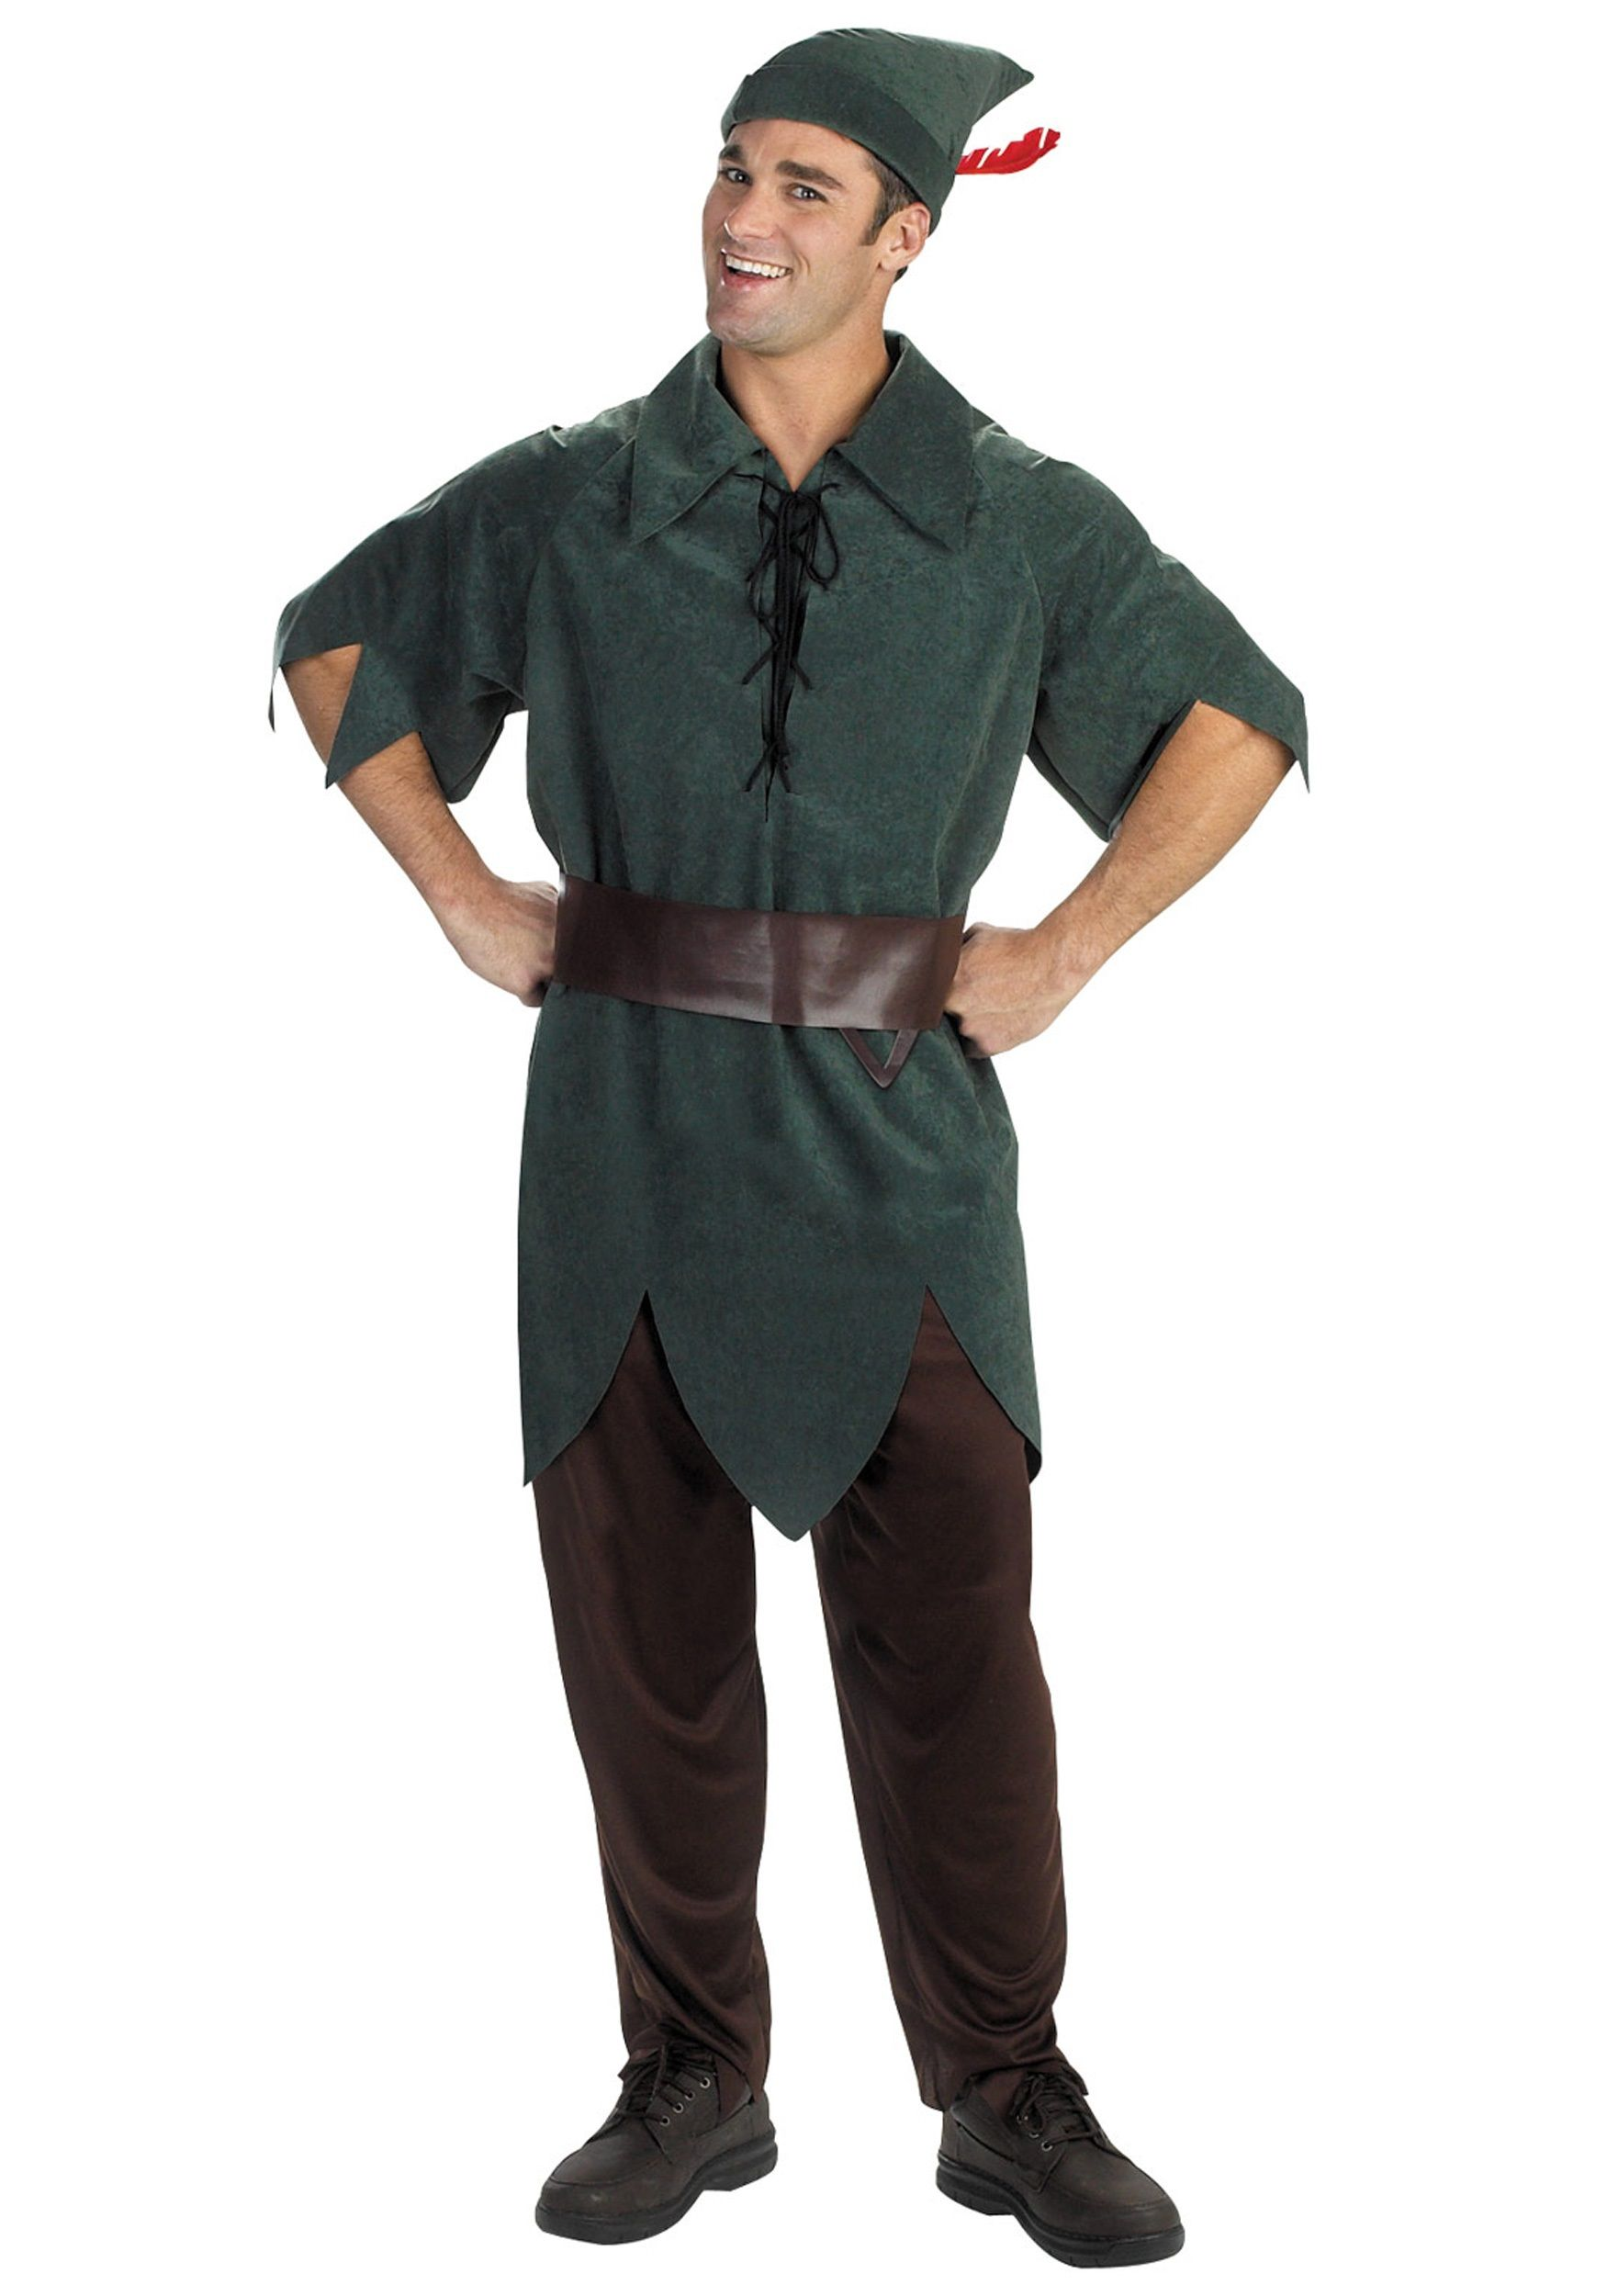 Adult Peter Pan Costume | Peter pan costumes, Costumes and Diy ...